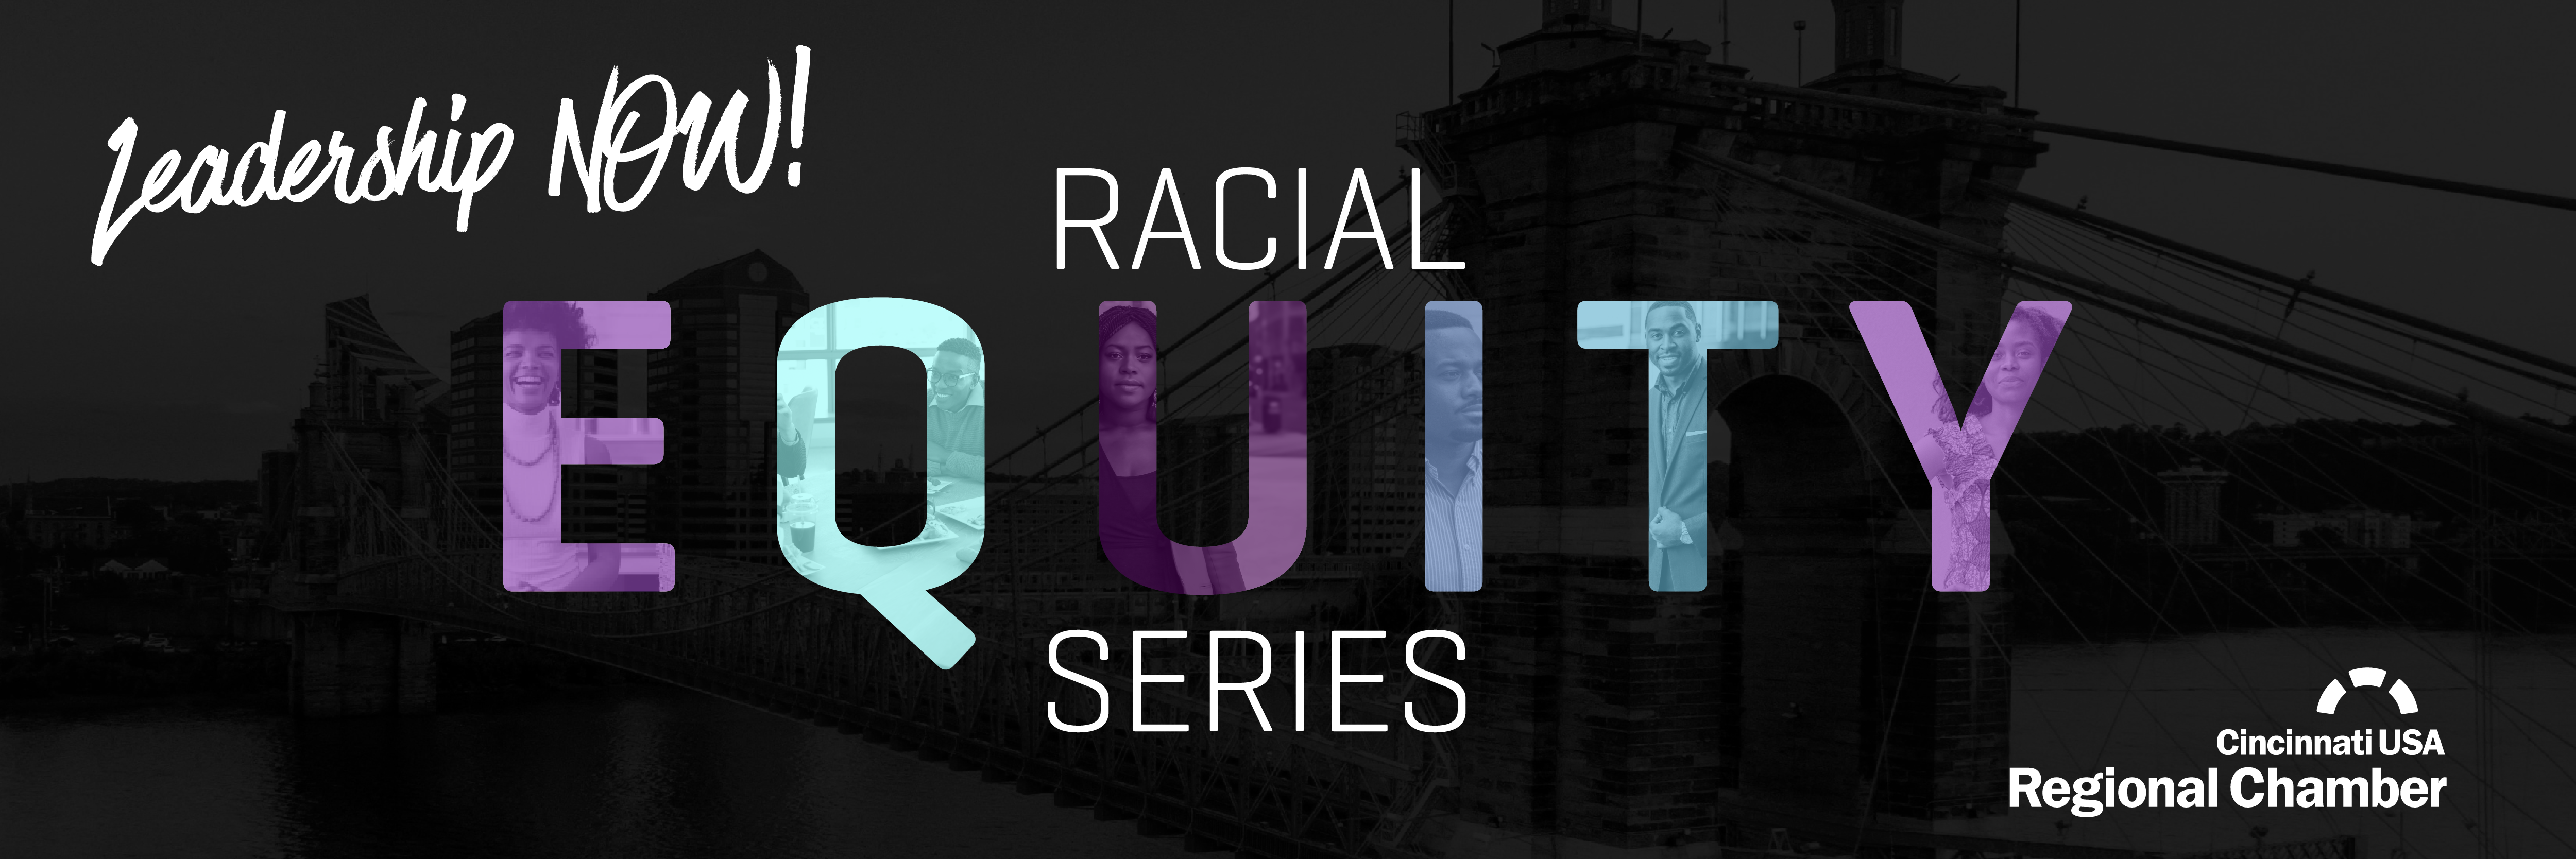 Racial Equity Series